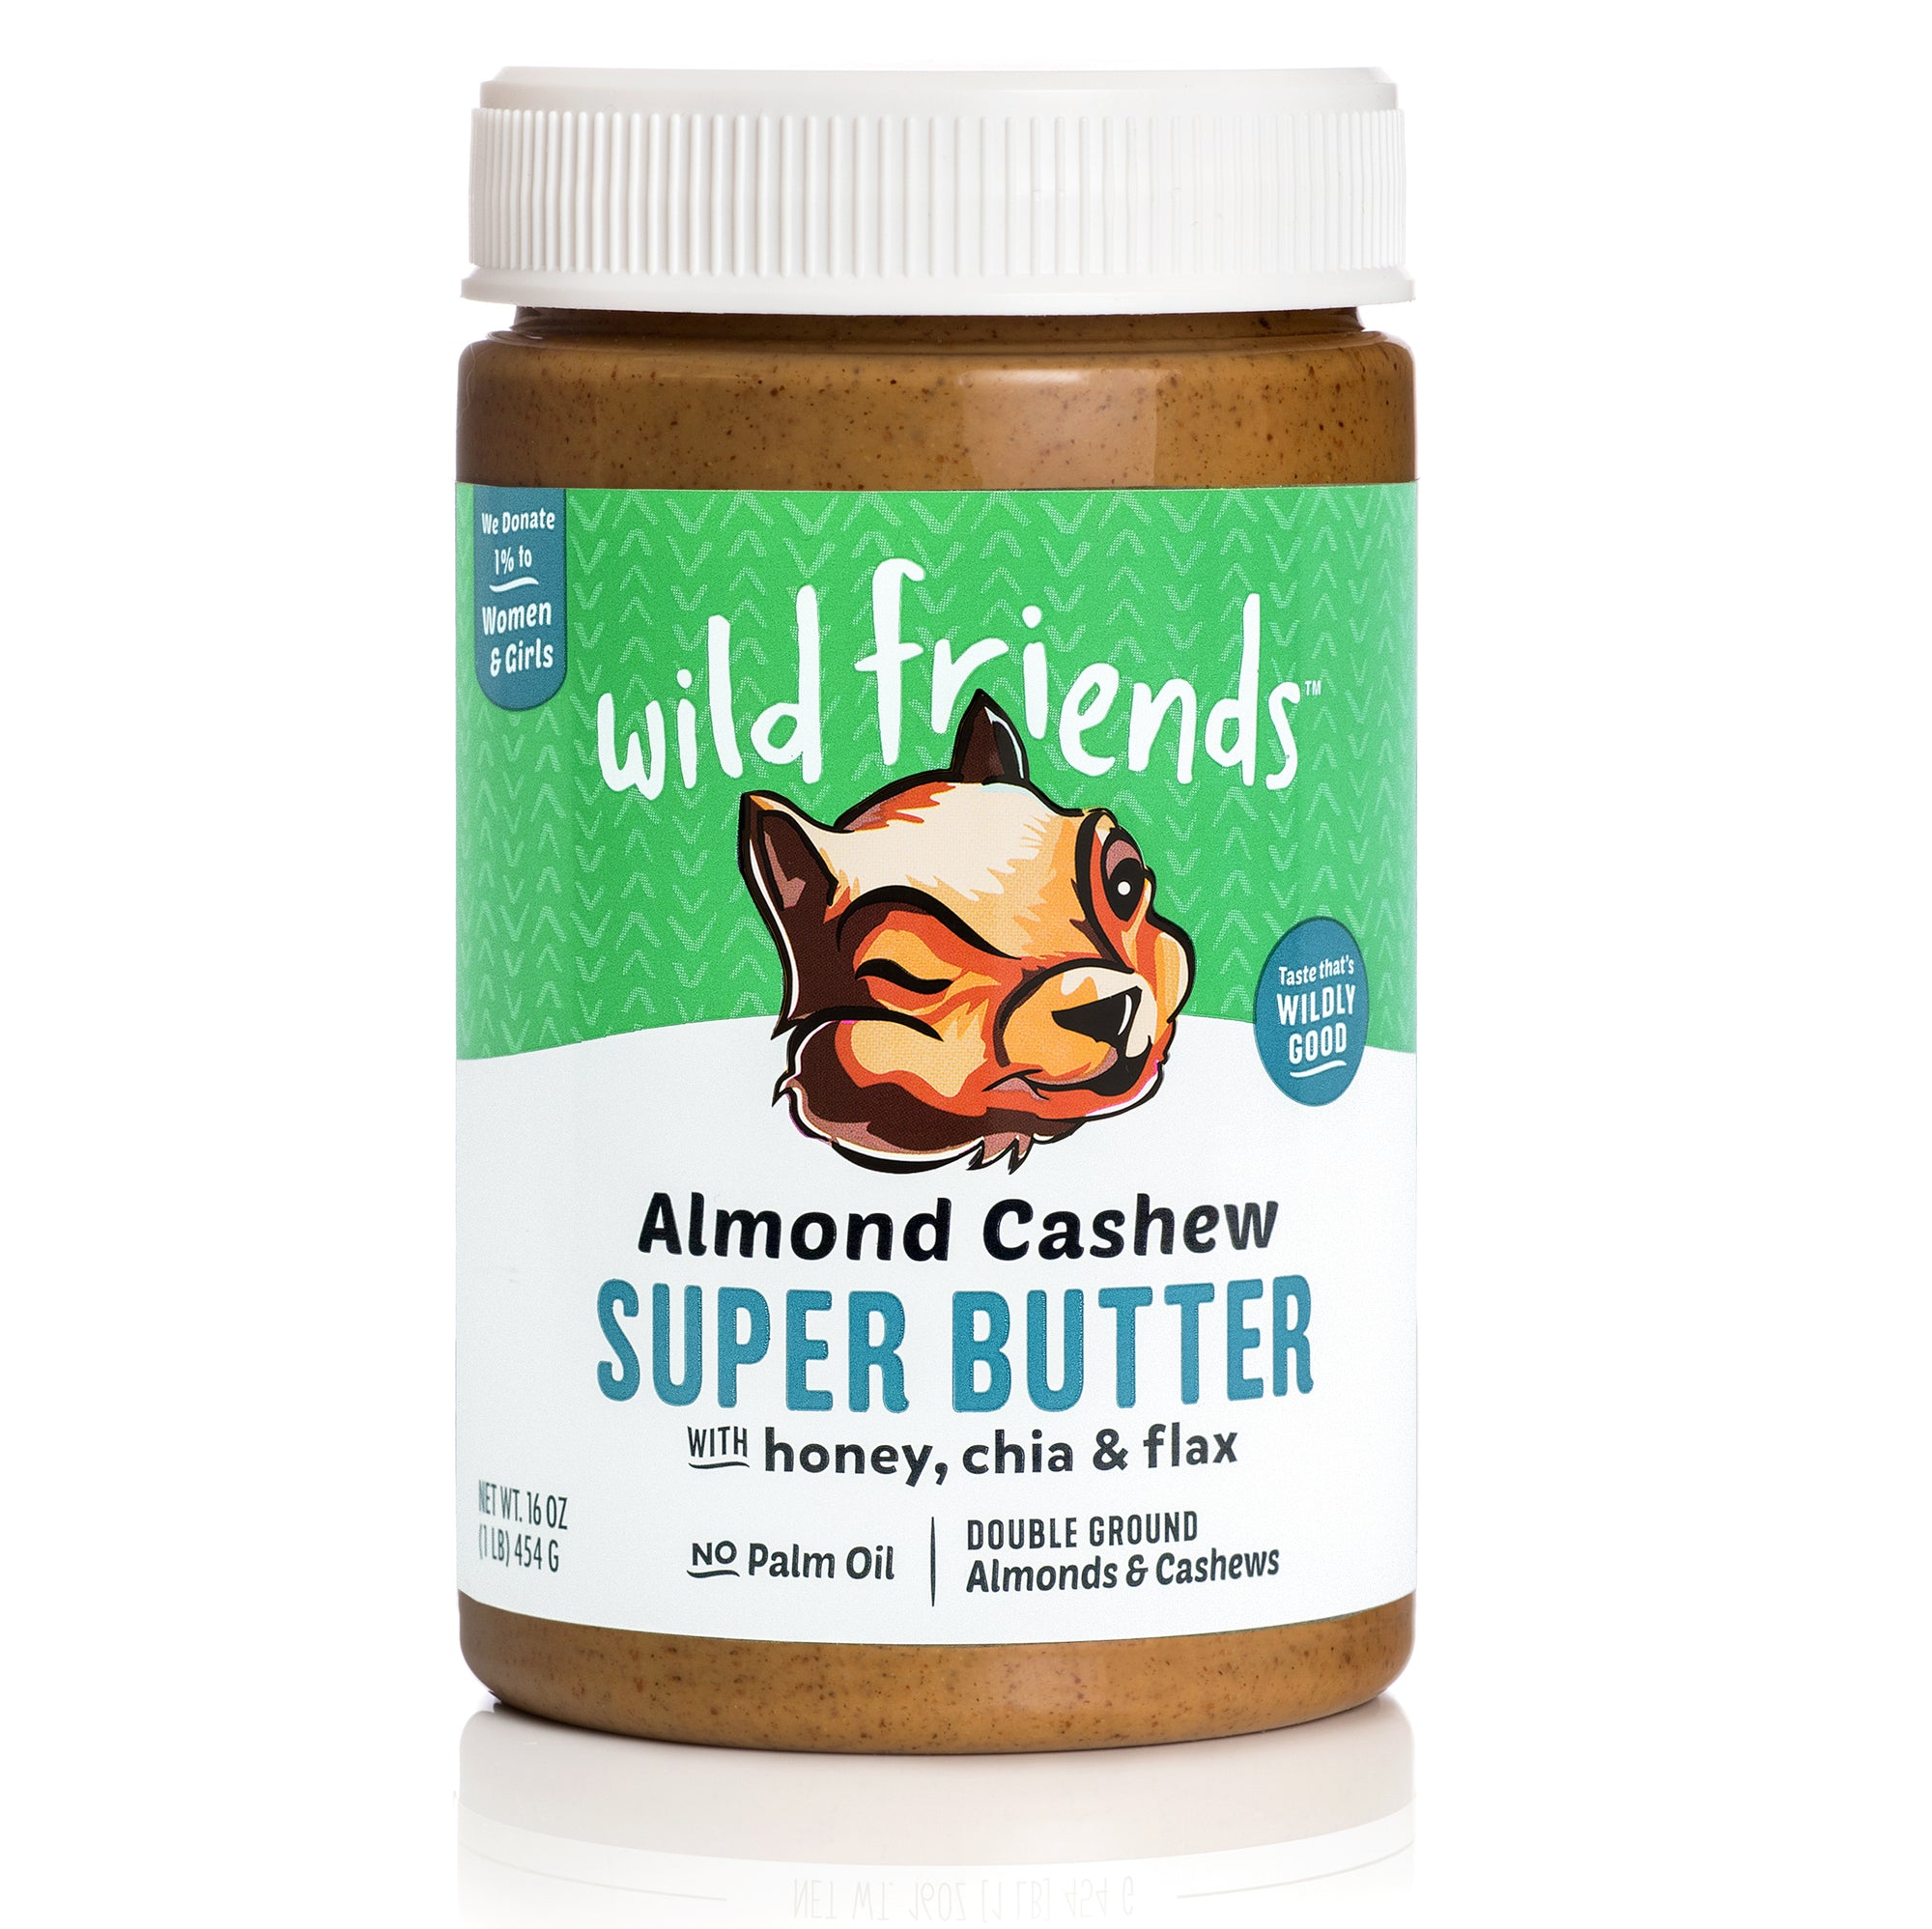 Almond Cashew Super Butter Packets